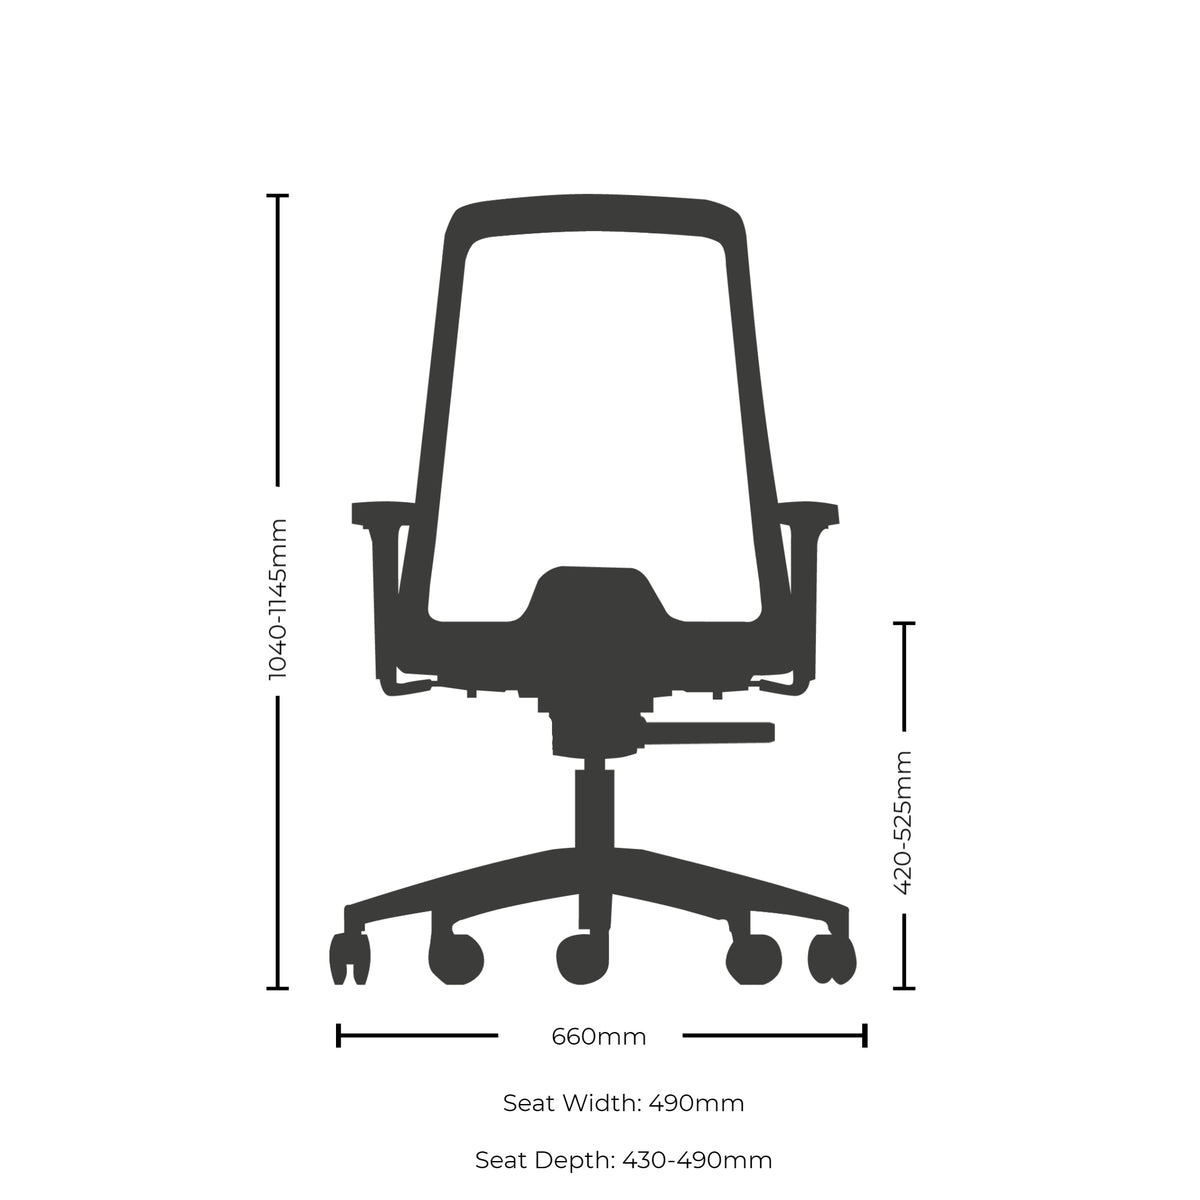 Dimensions for Interstuhl Office EVERYIS1 Office Task Chair 182E